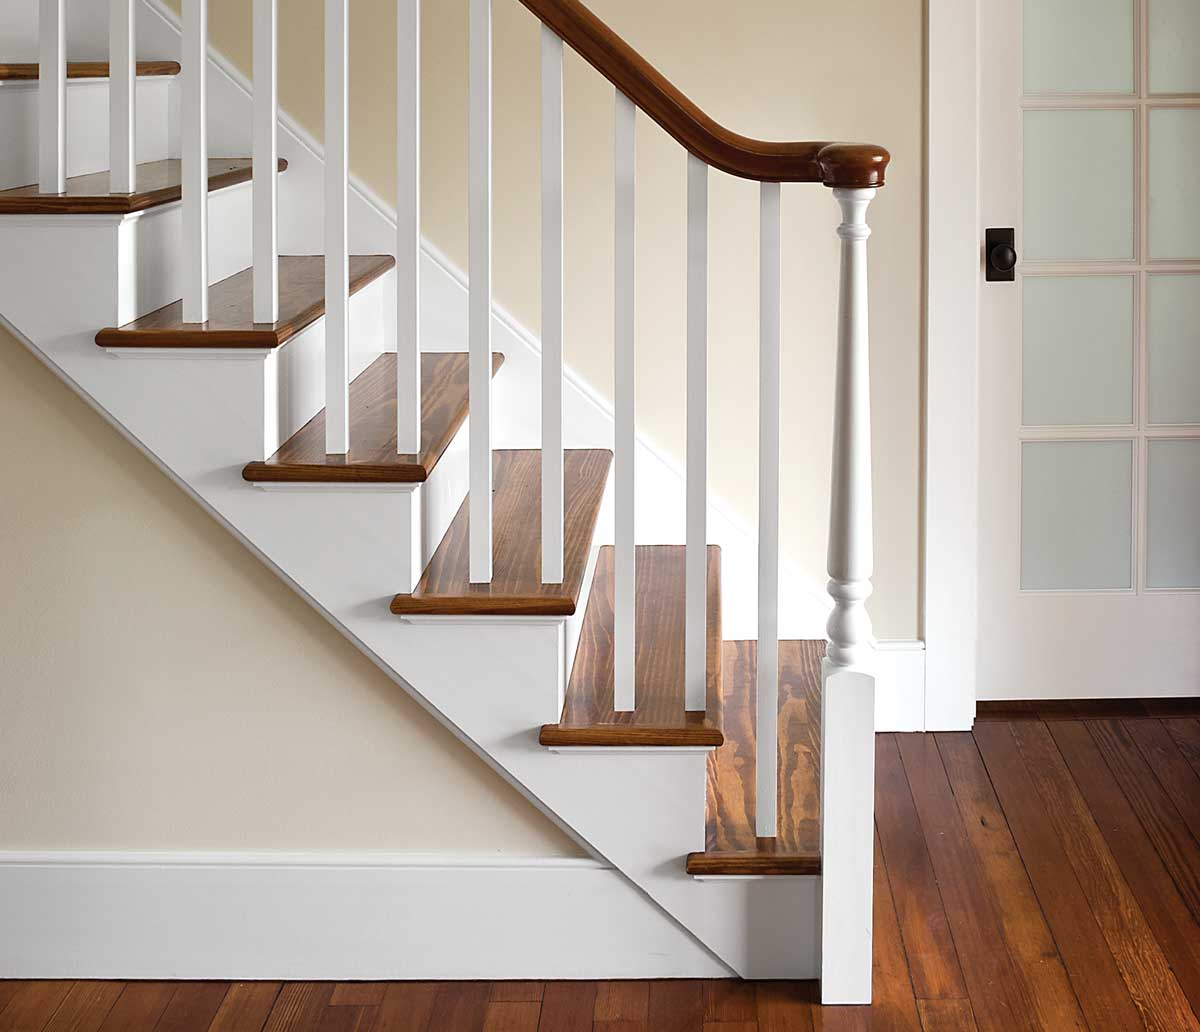 photo of stair with square balusters